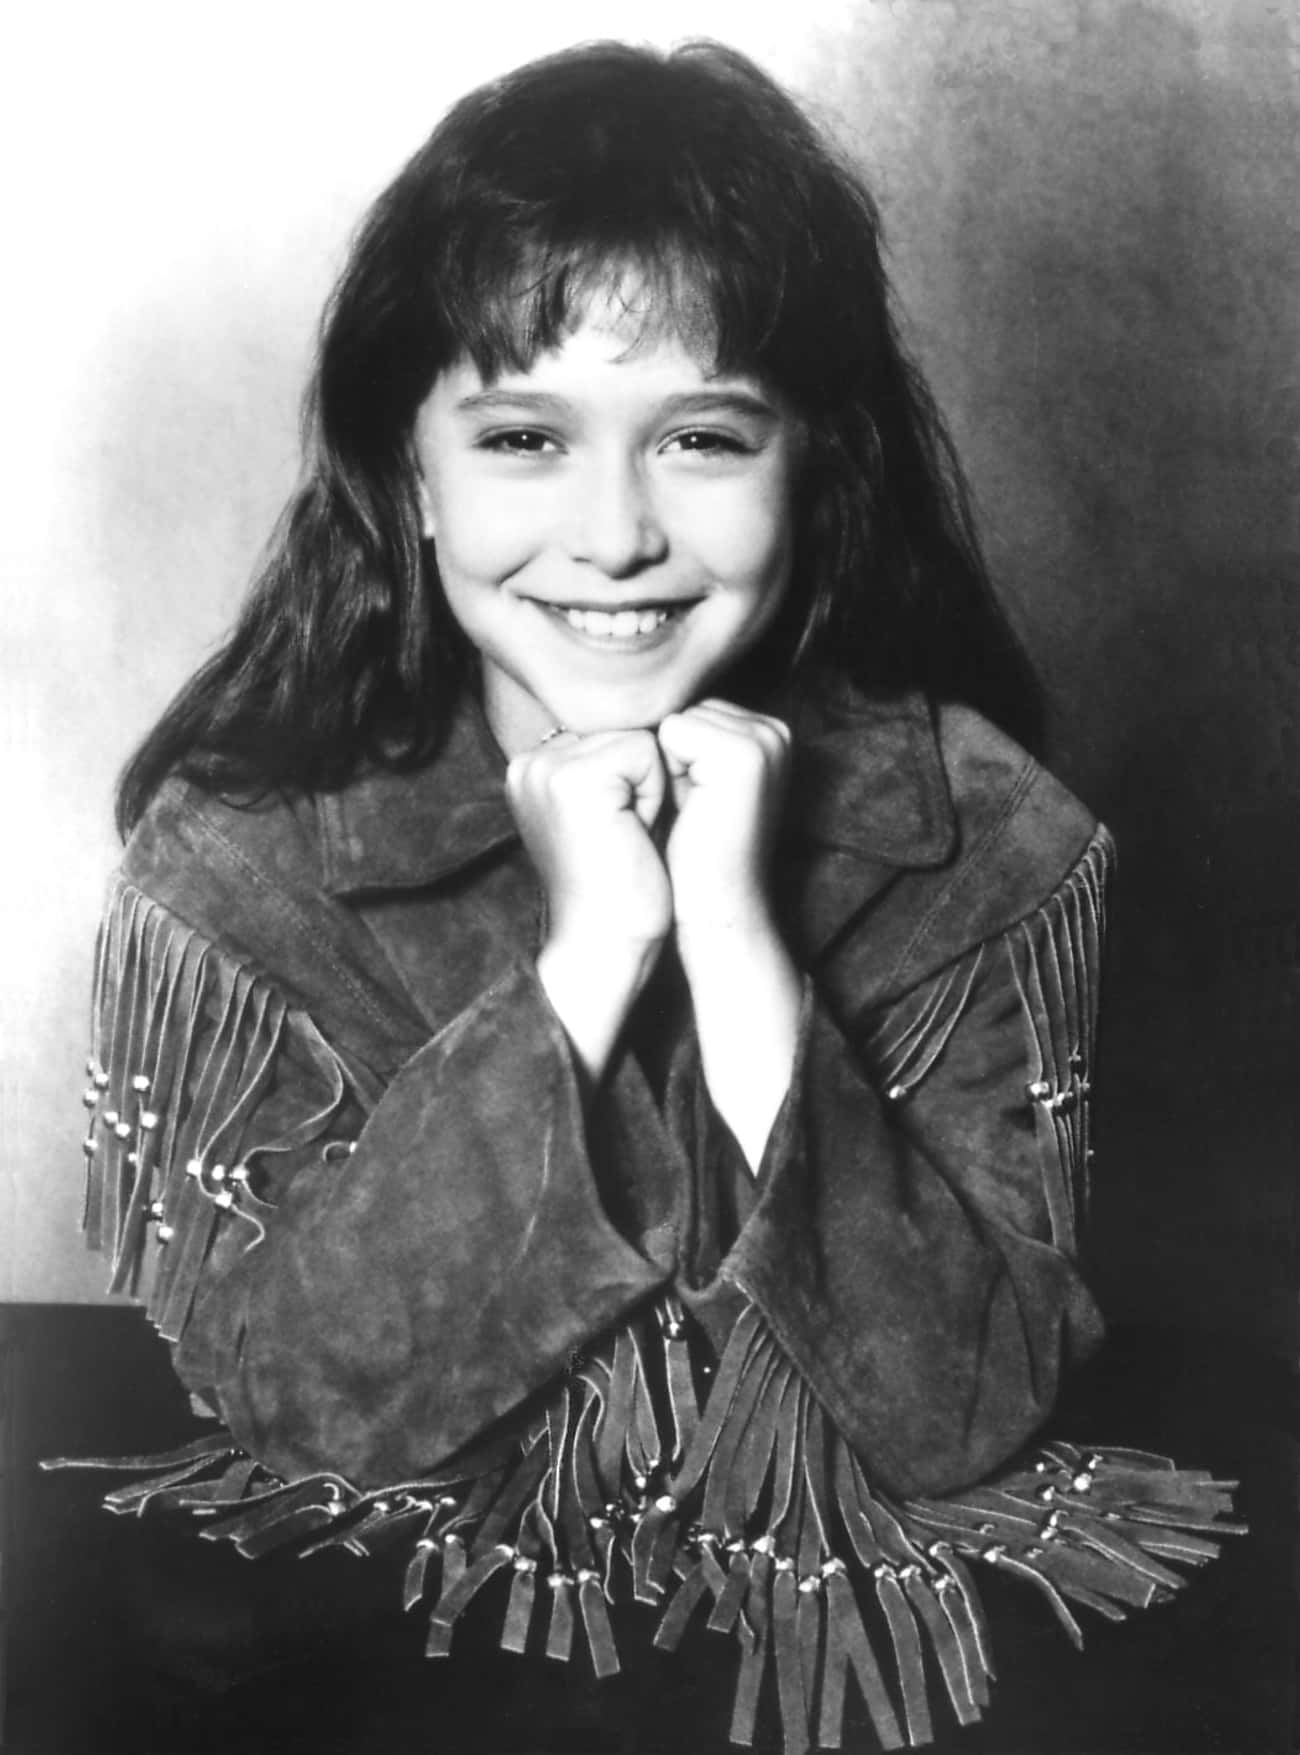 Jennifer Love Hewitt As A Kid is listed (or ranked) 2 on the list 30 Pictures of Young Jennifer Love Hewitt